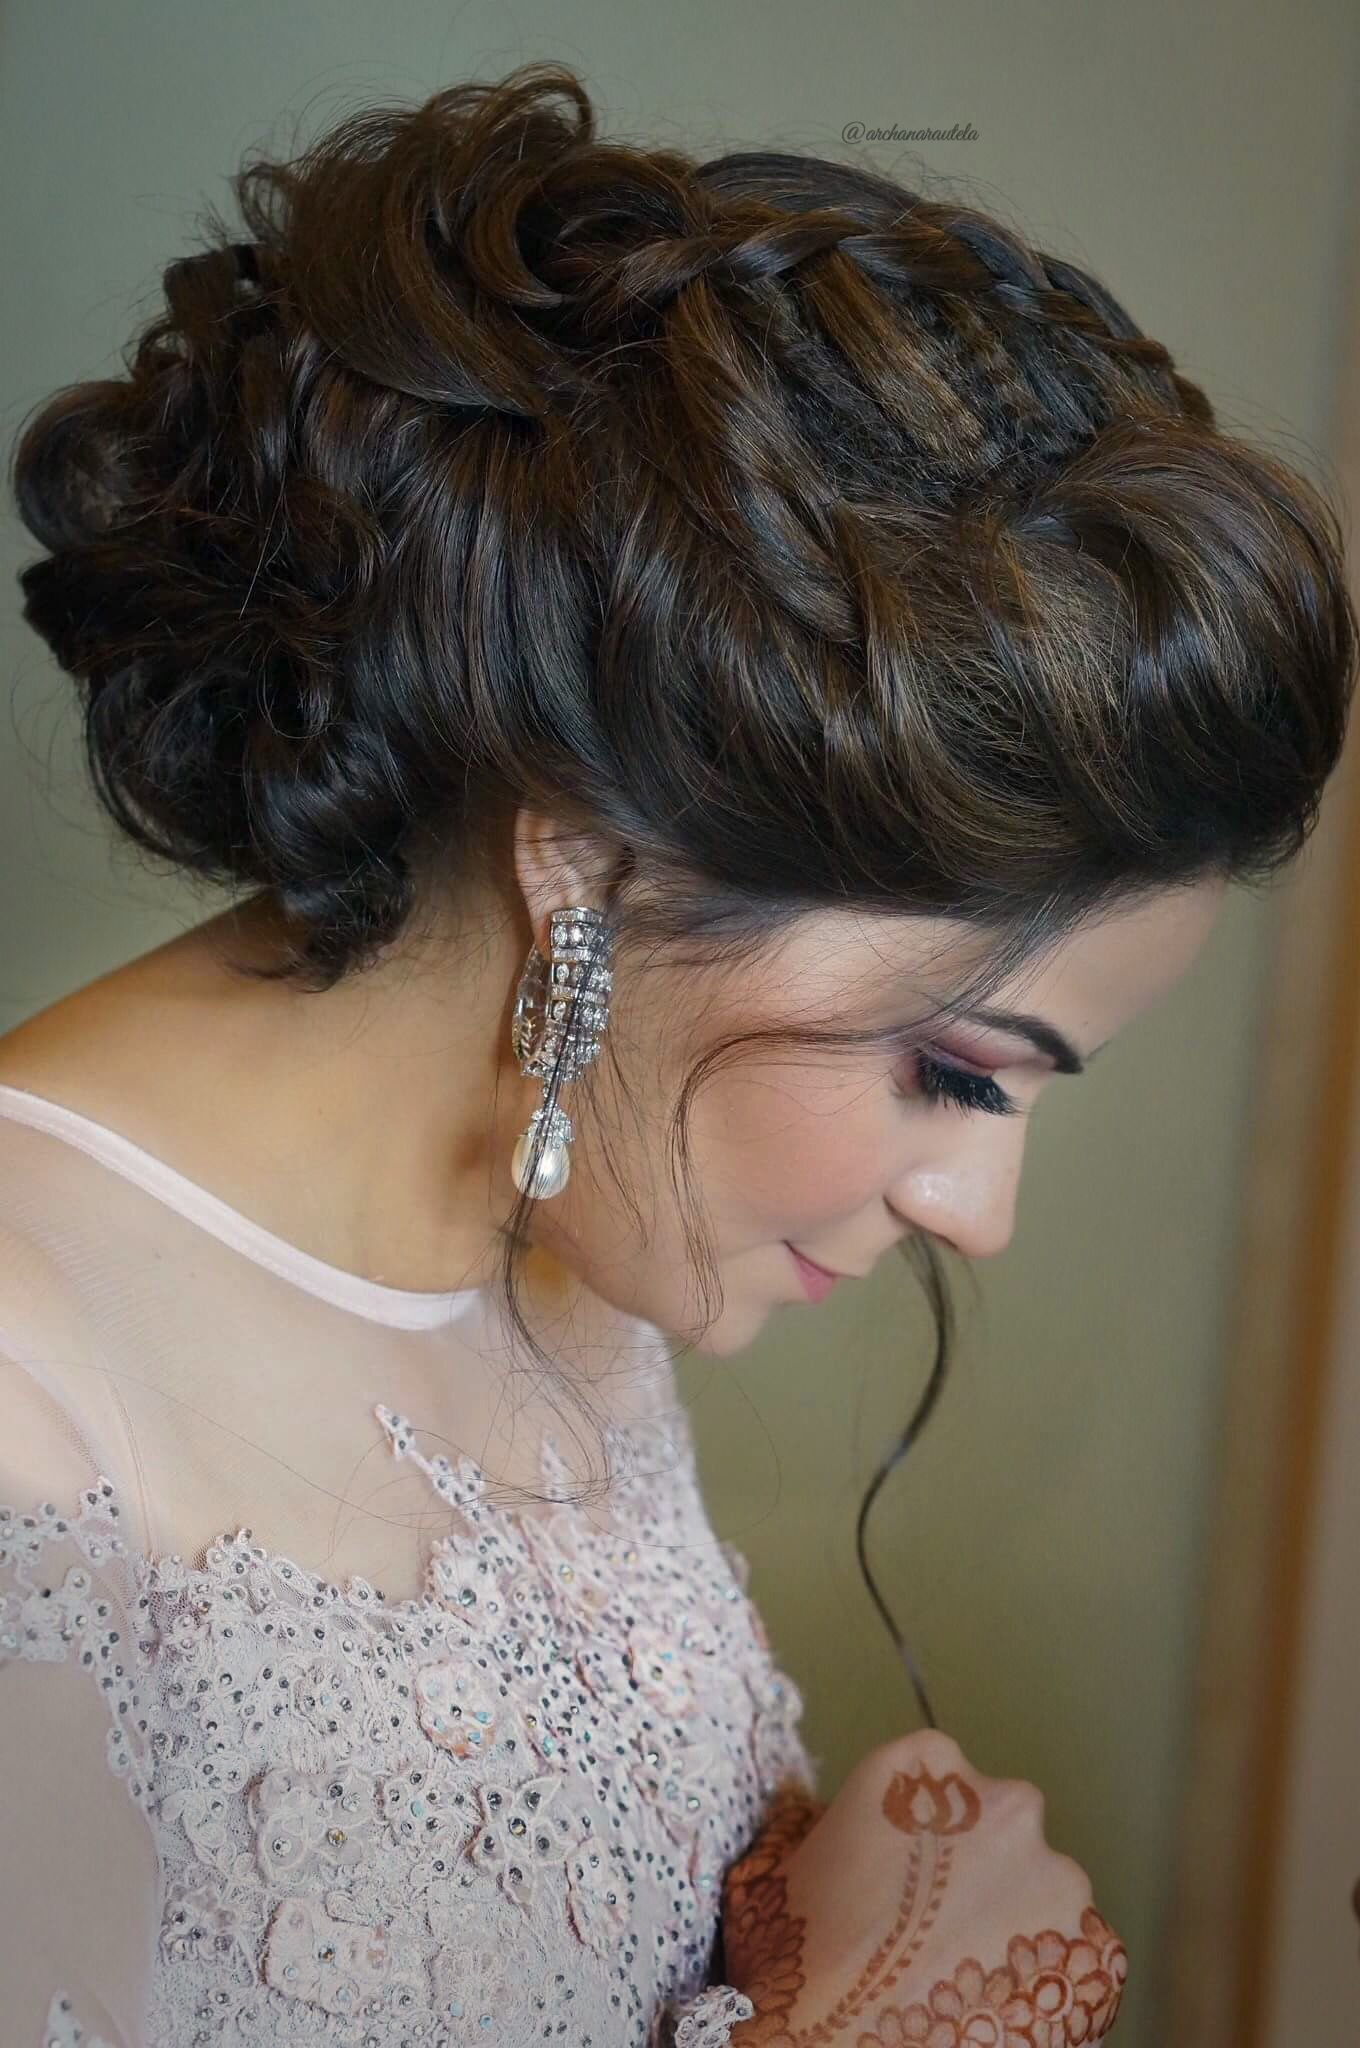 Nidhi Looking Gorgeous With Braided Messy Bun Hair